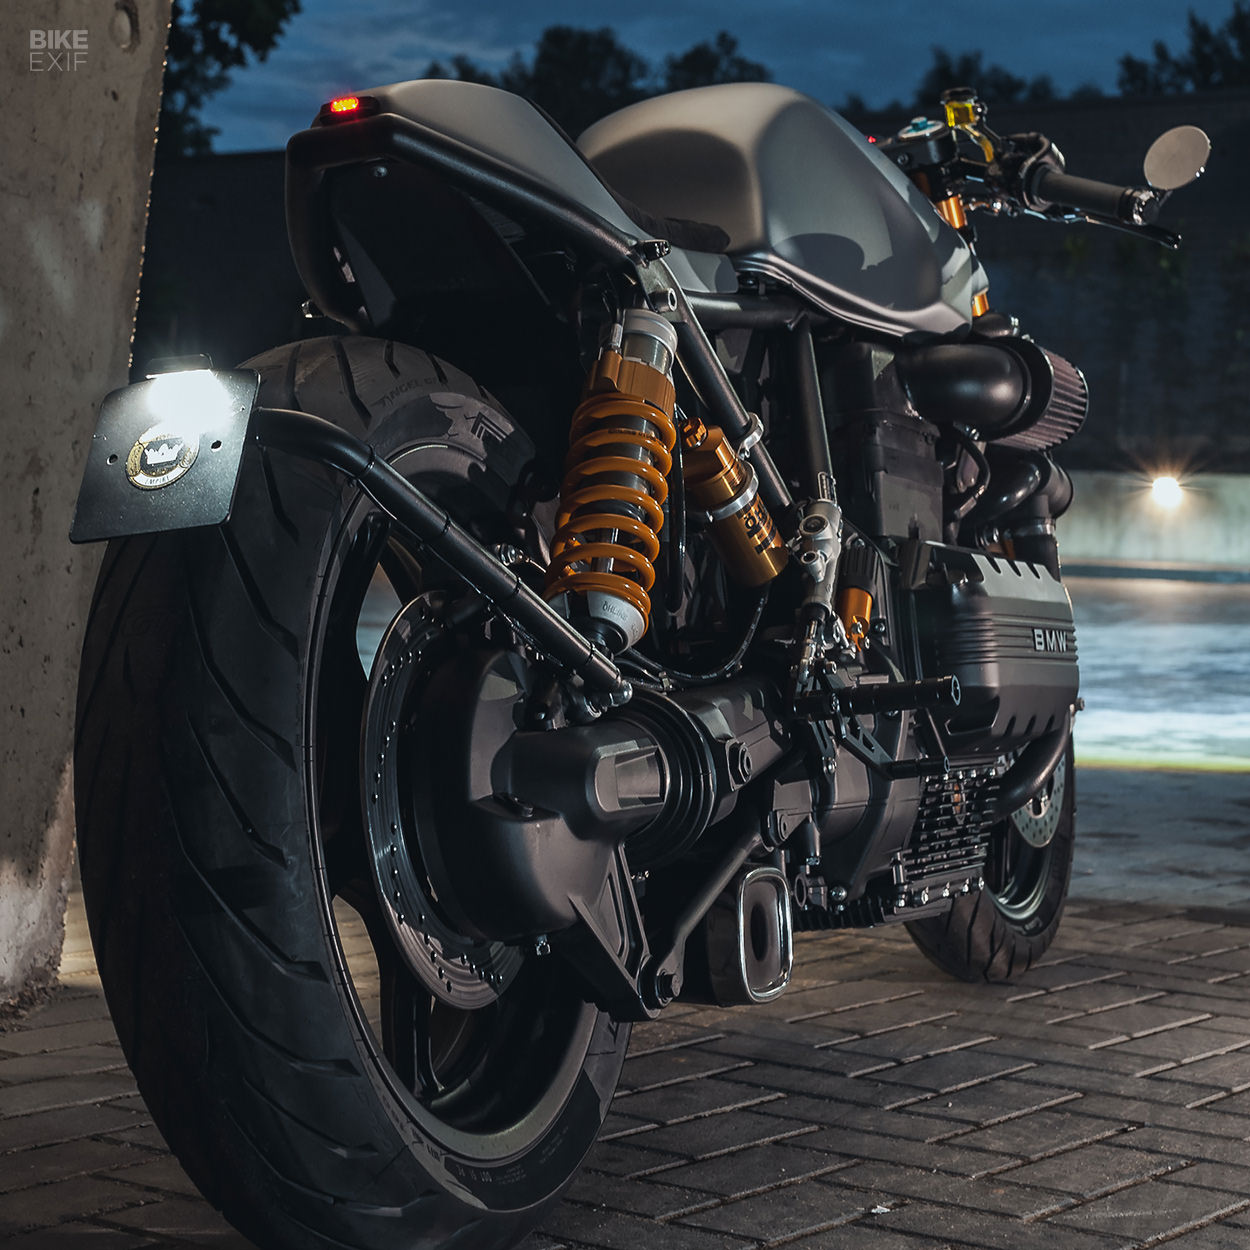 BMW K1100 cafe racer by Two Wheels Empire